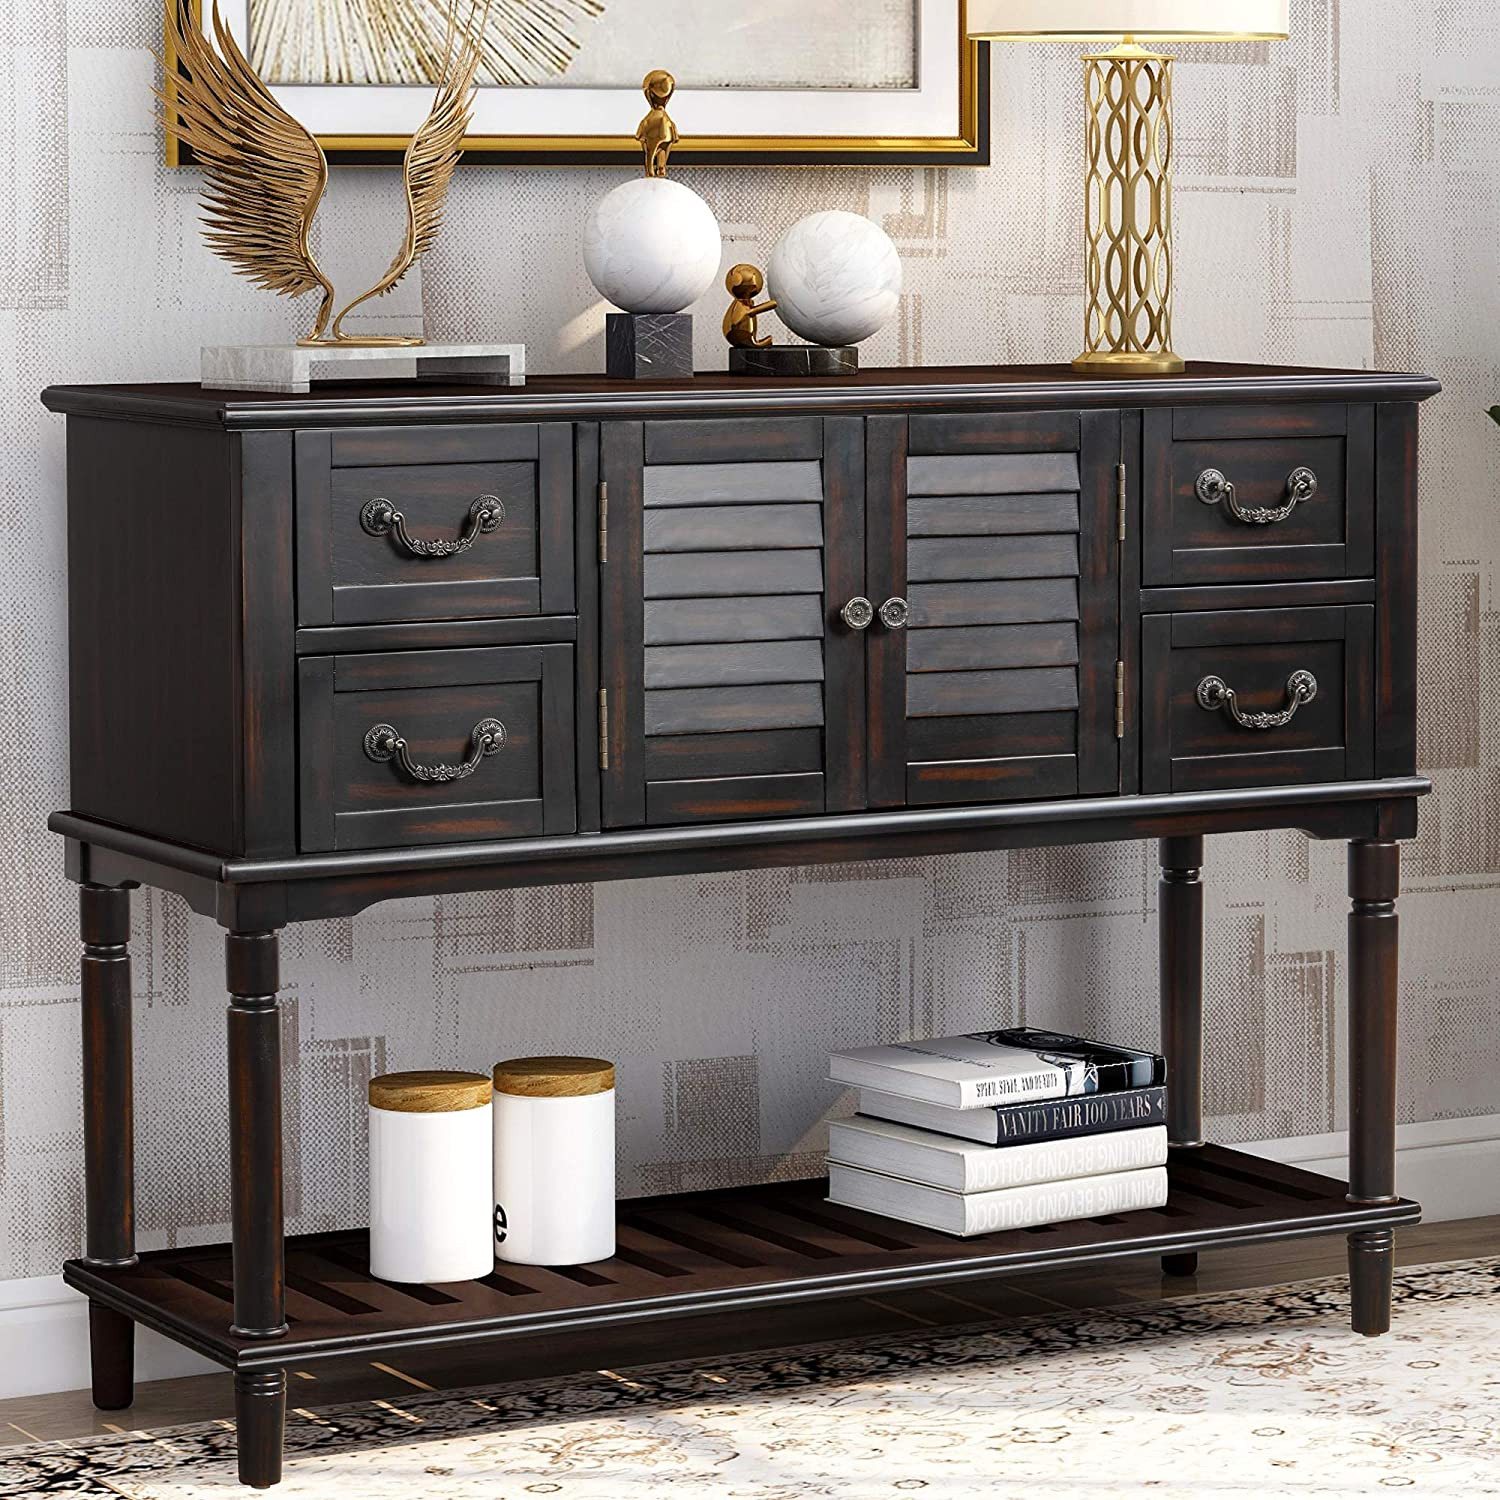 LUMISOL Console Table Sideboard Entryway Sofa Table with 4 Storage Drawers, Shutter Doors and Bottom Shelf (Espresso)